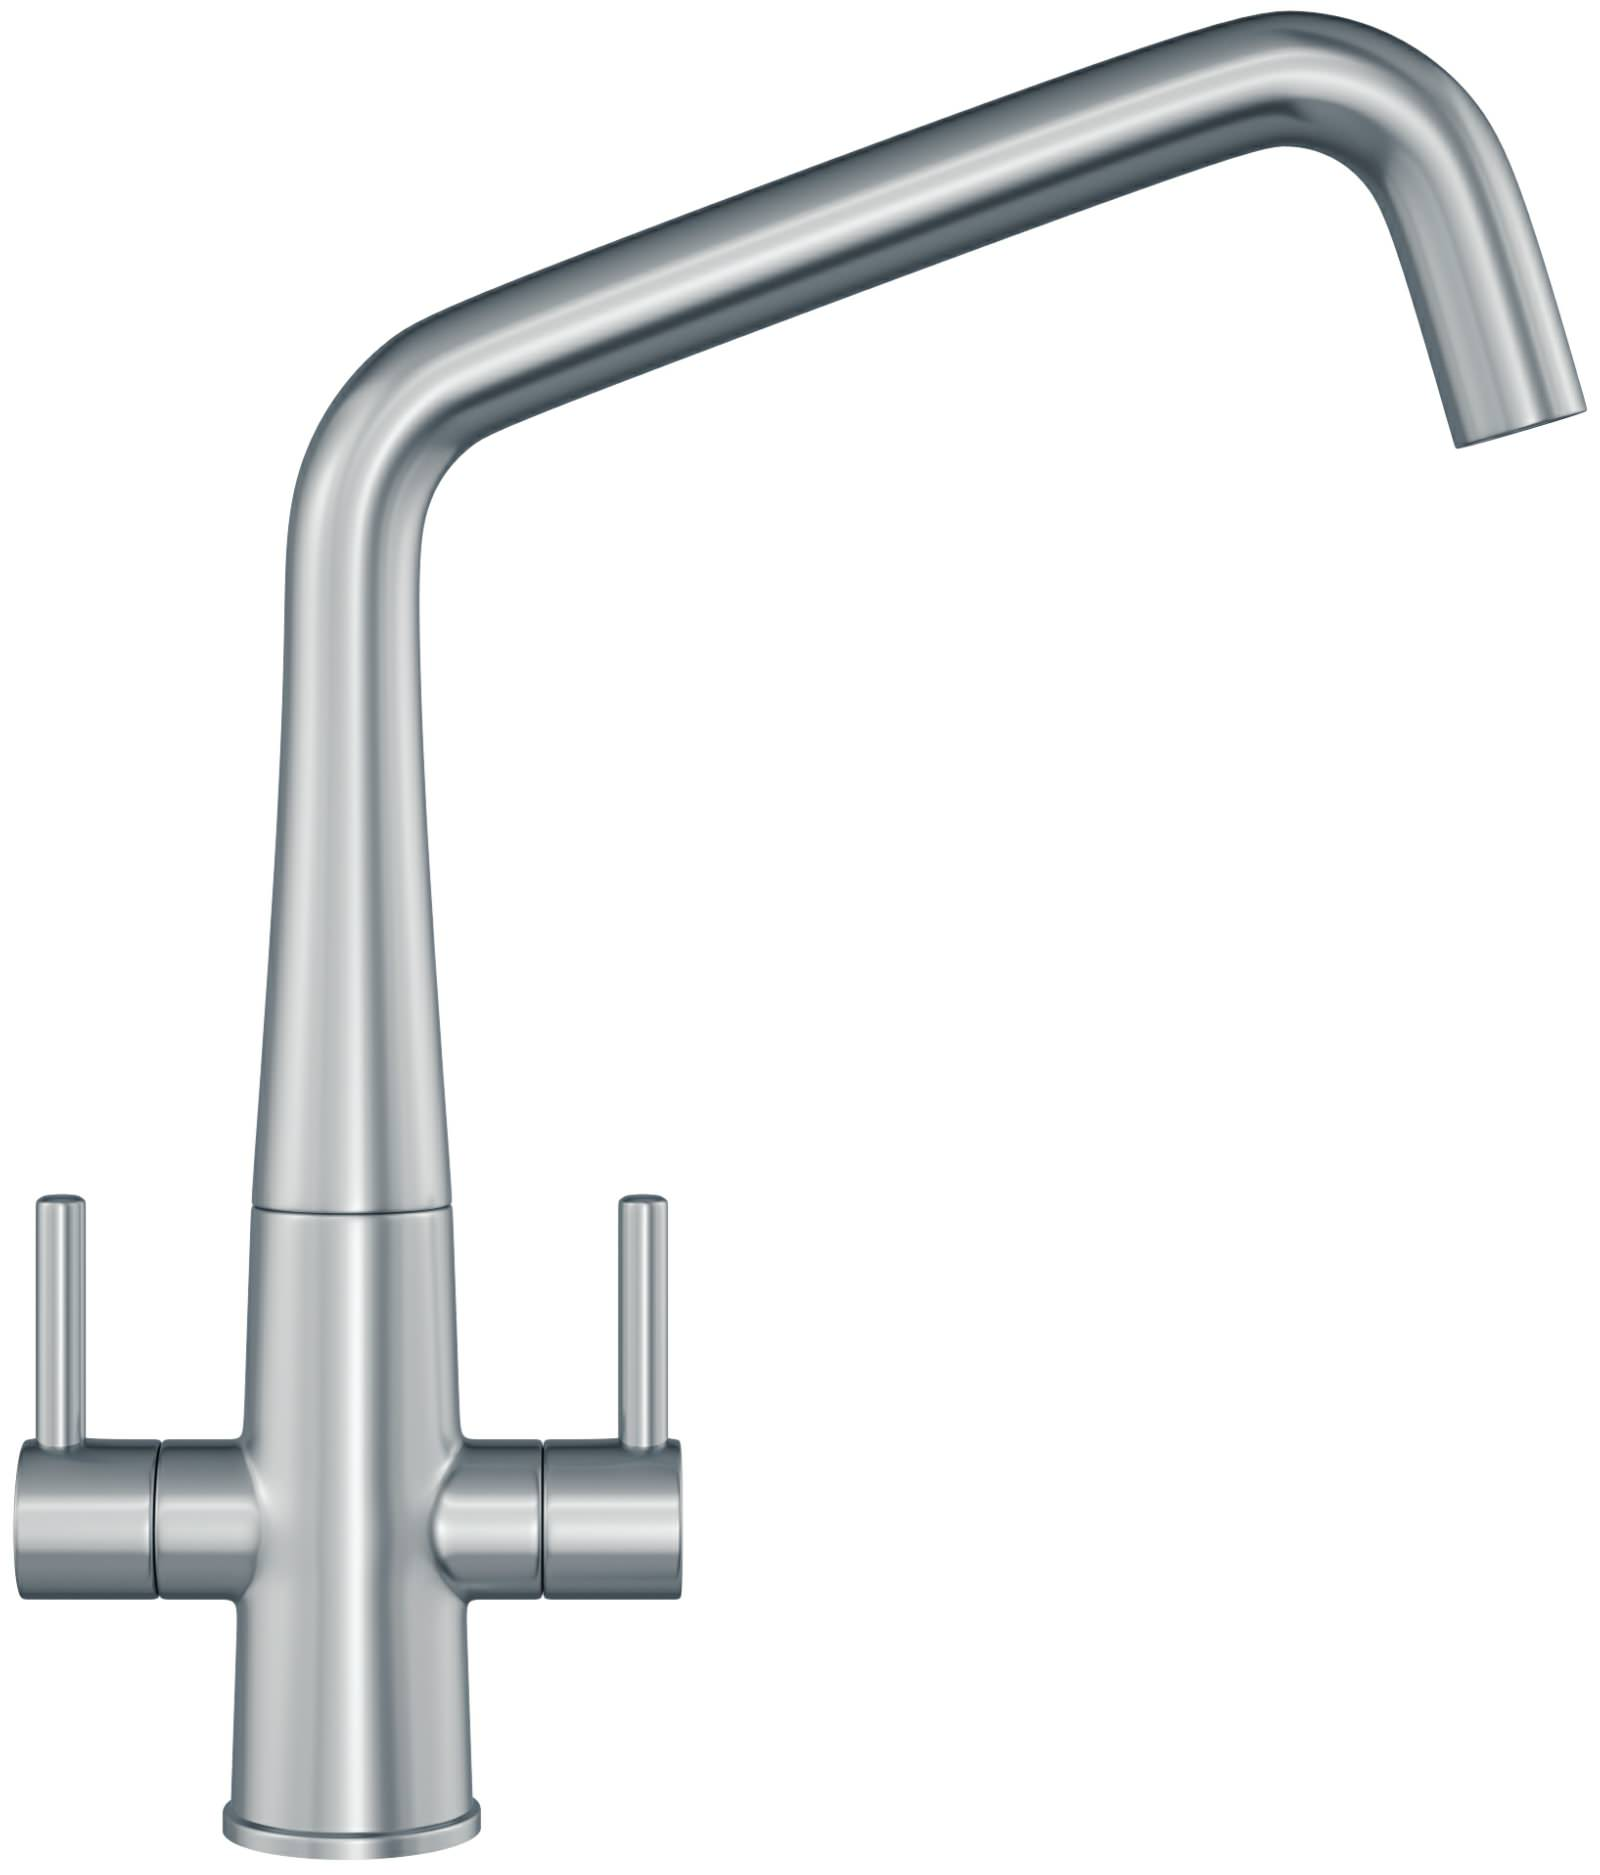 Franke Kitchen Mixer : ... kitchen mixer taps franke cristallo silksteel kitchen sink mixer tap